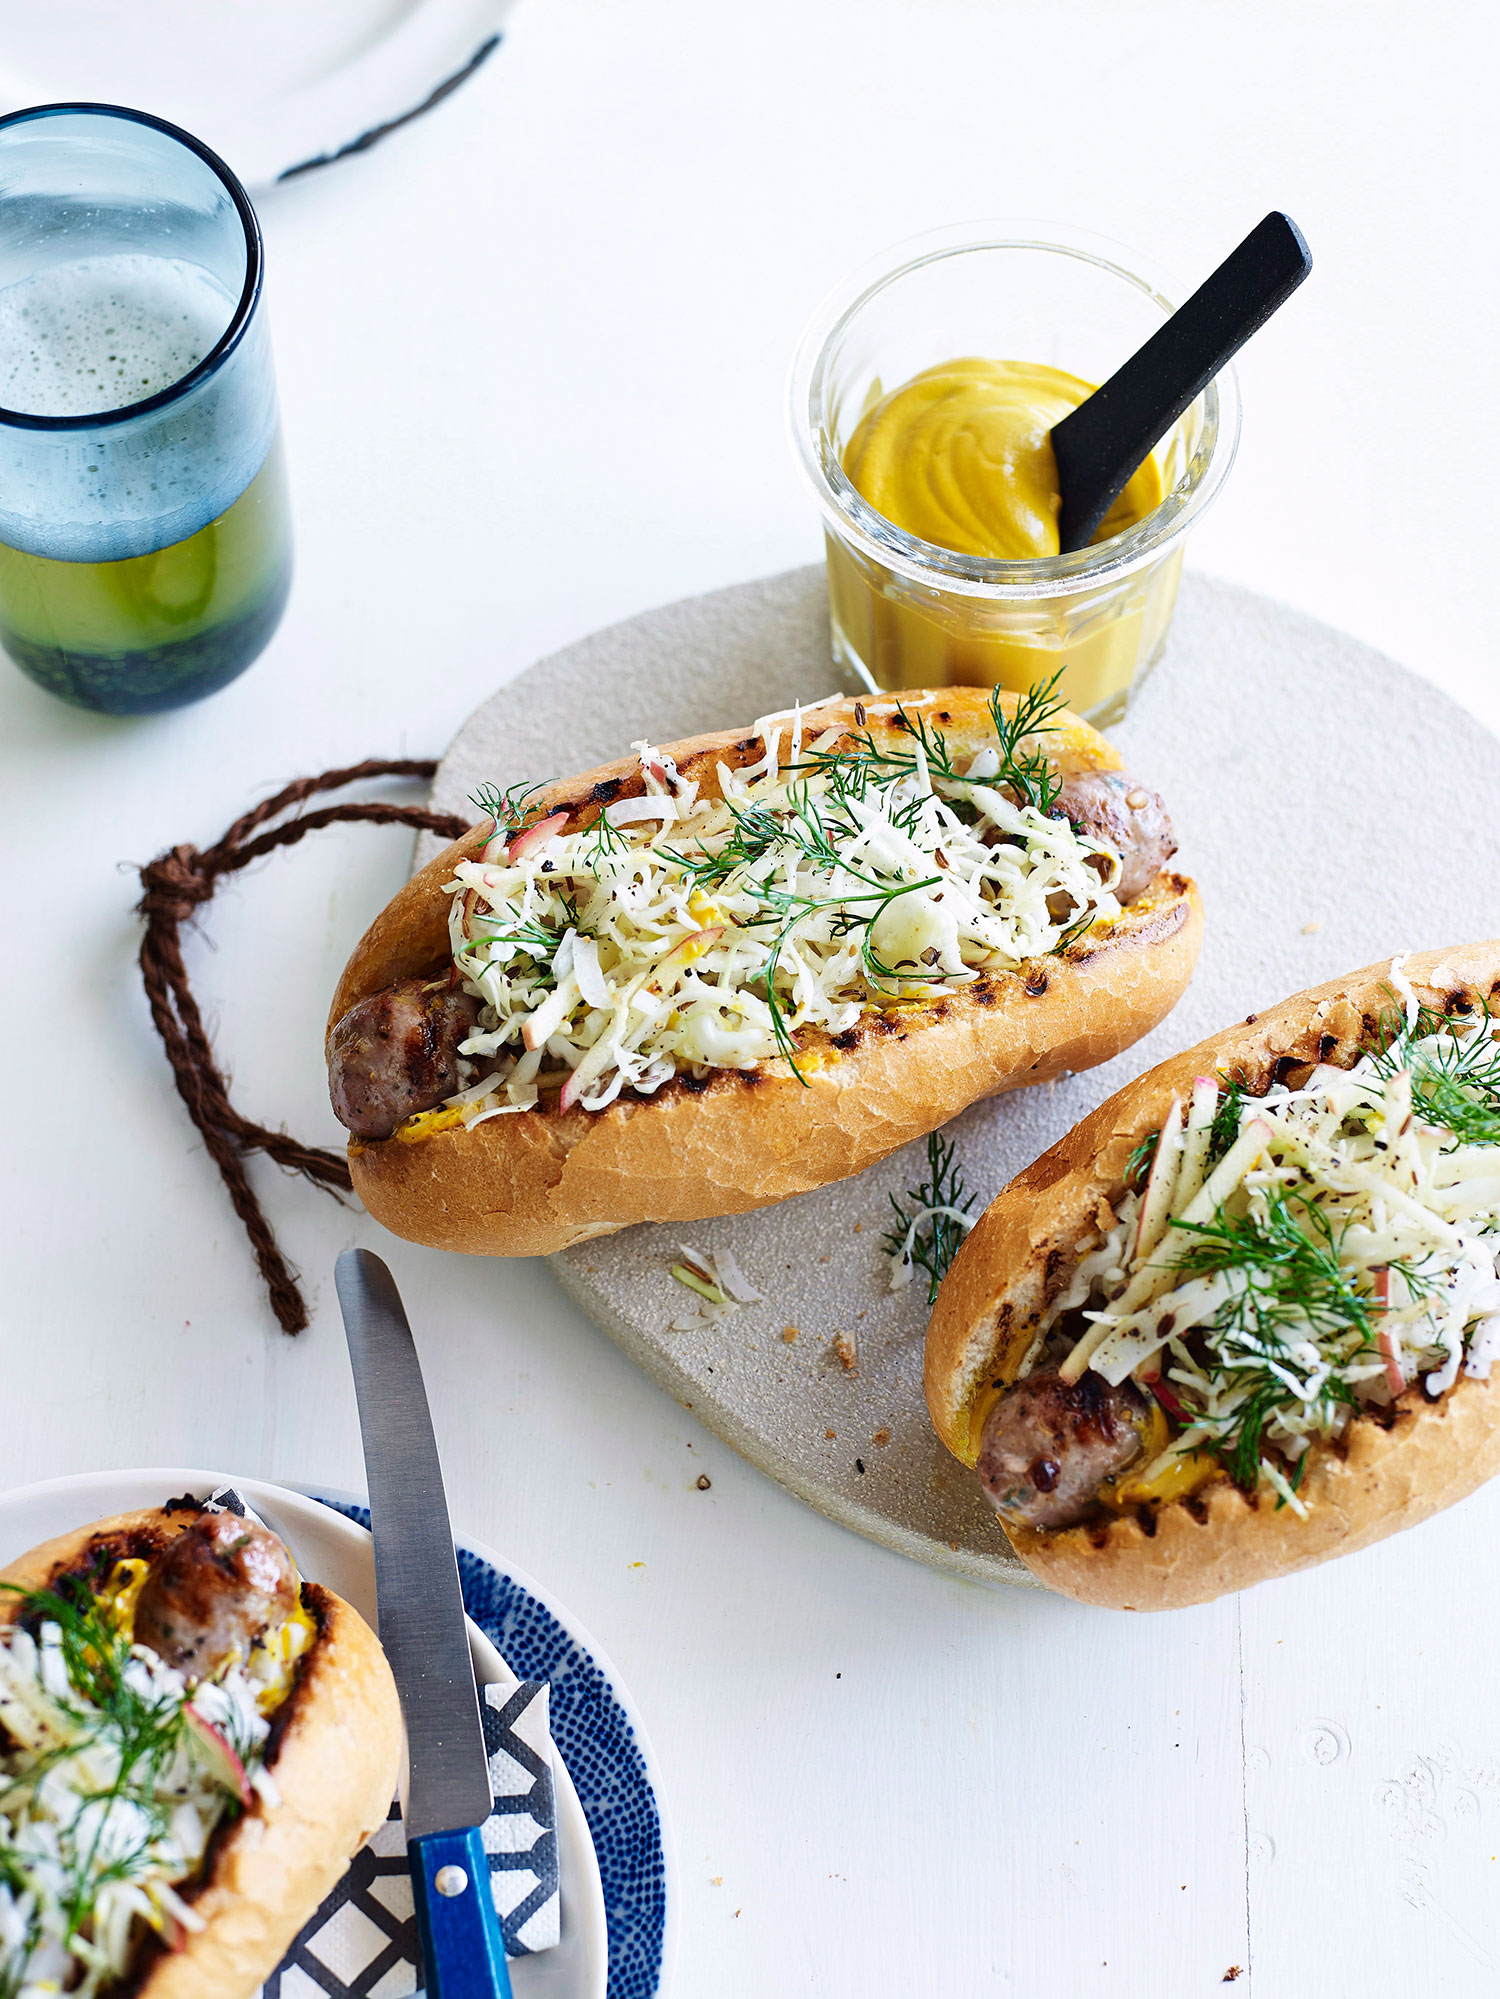 PORK SAUSAGES WITH CARAWAY SEED, CABBAGE AND APPLE SLAW